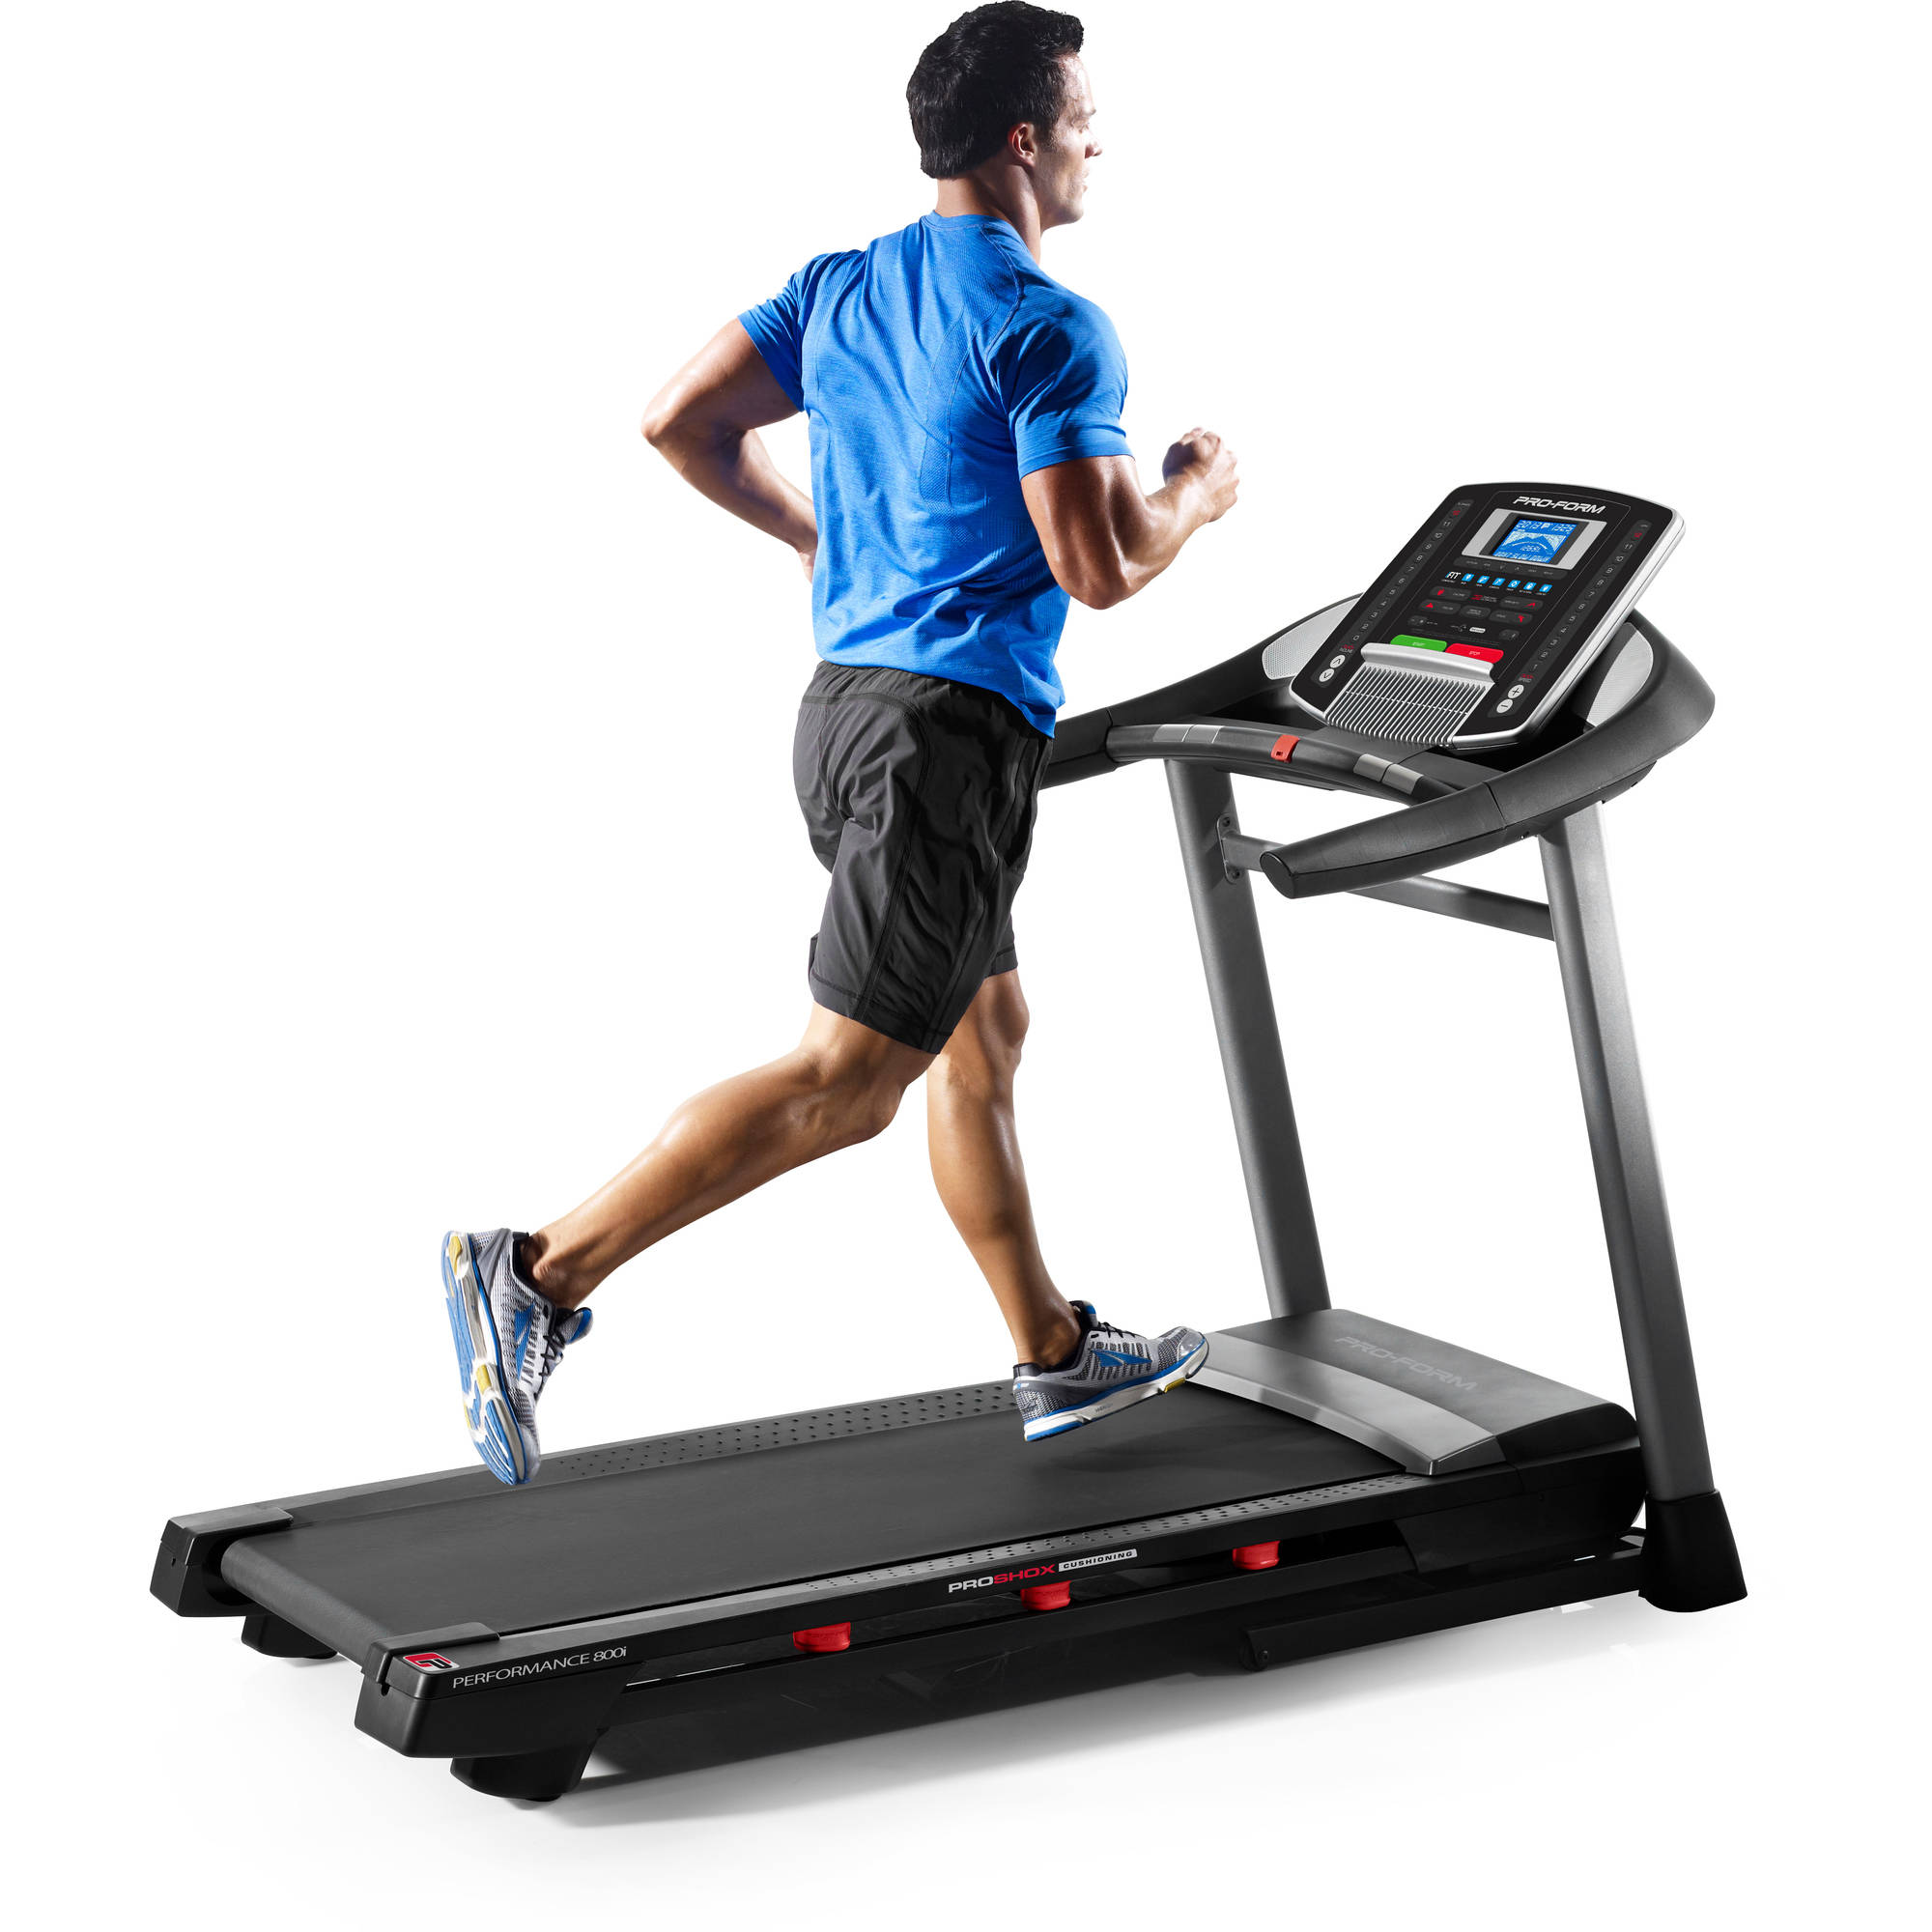 ProForm Performance 800i Treadmill with 3.0CHP Motor & 12% Incline